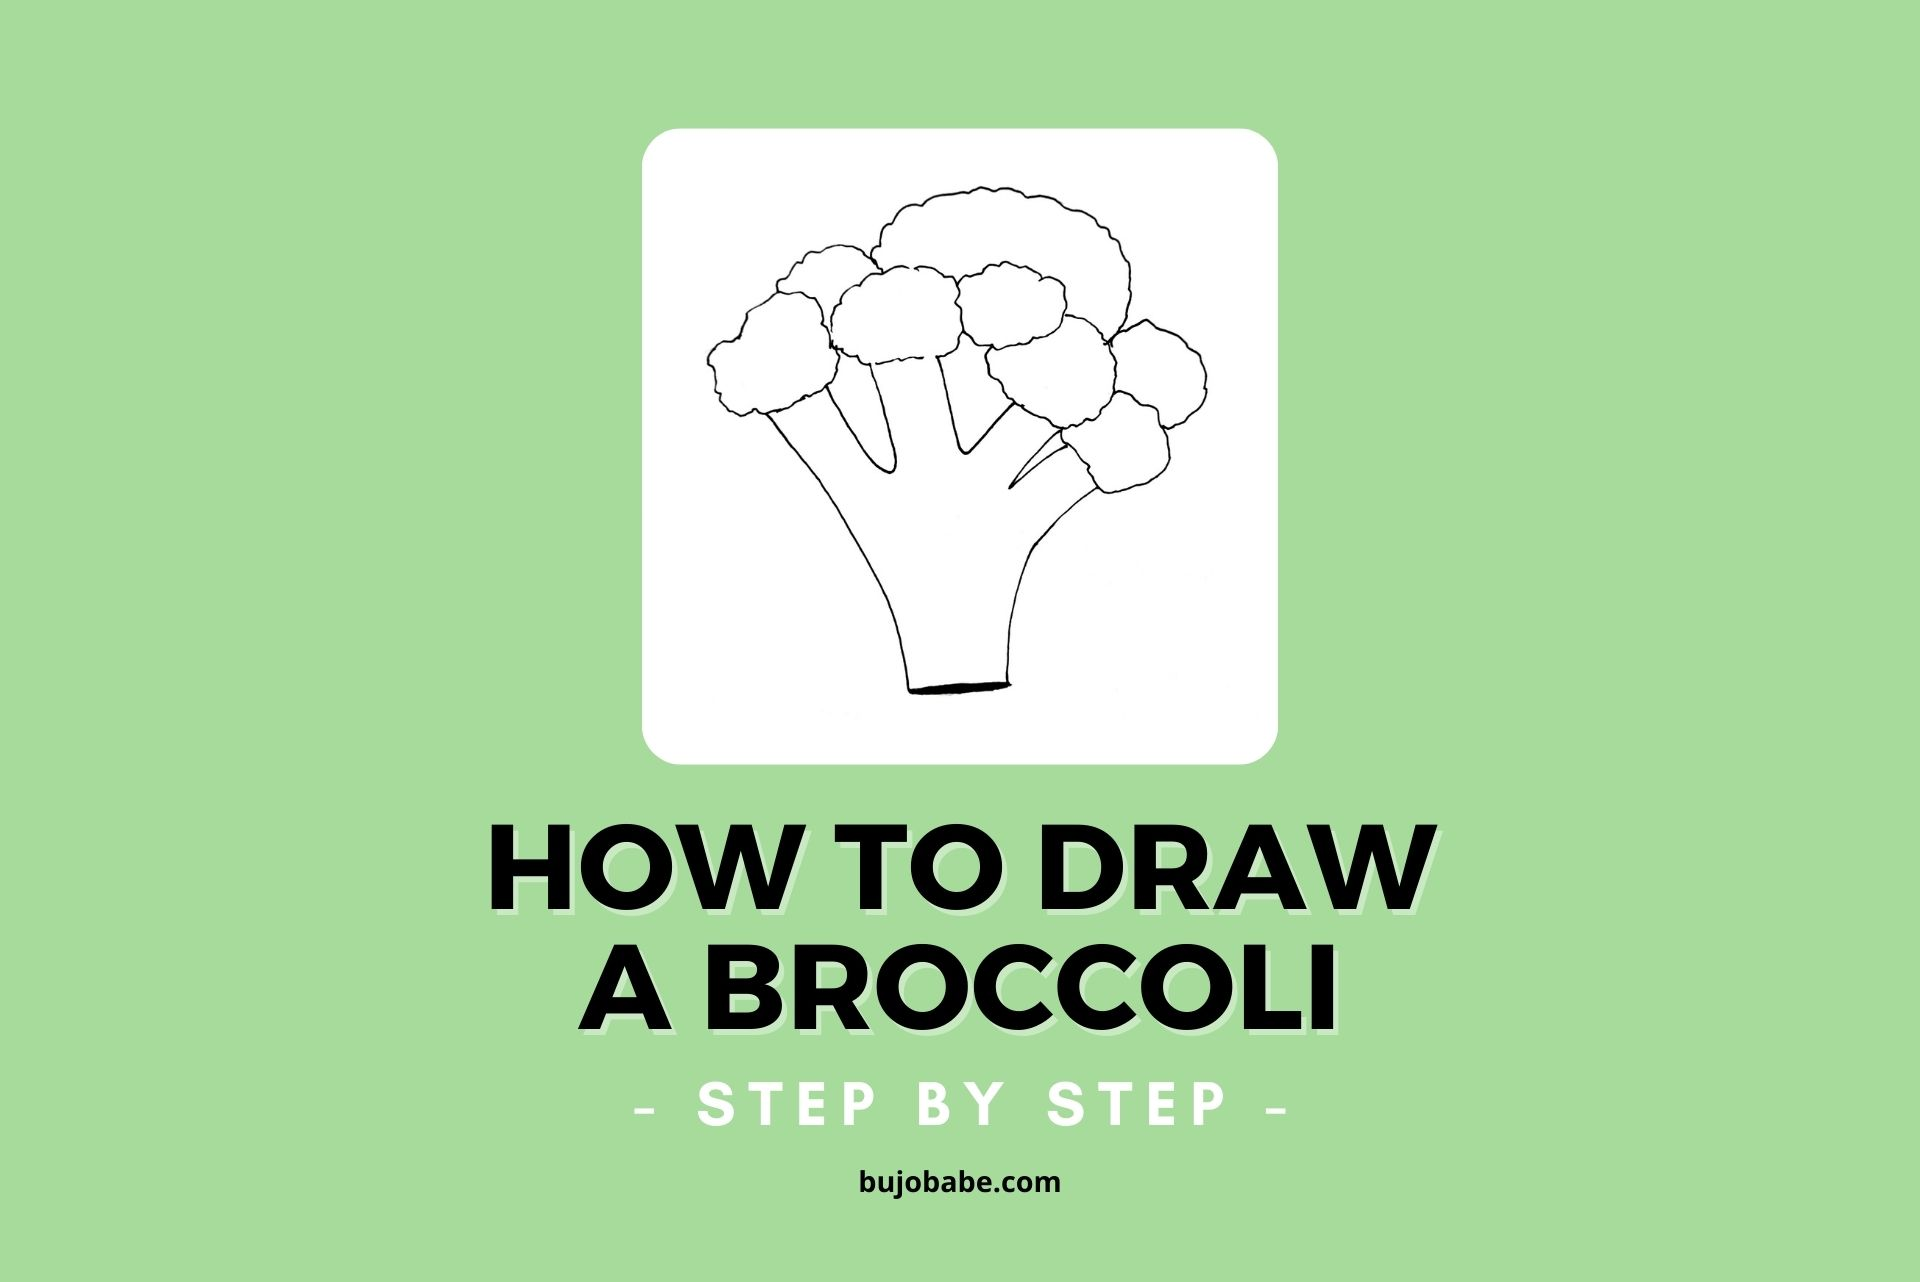 How to draw broccoli step by step drawing tutorial